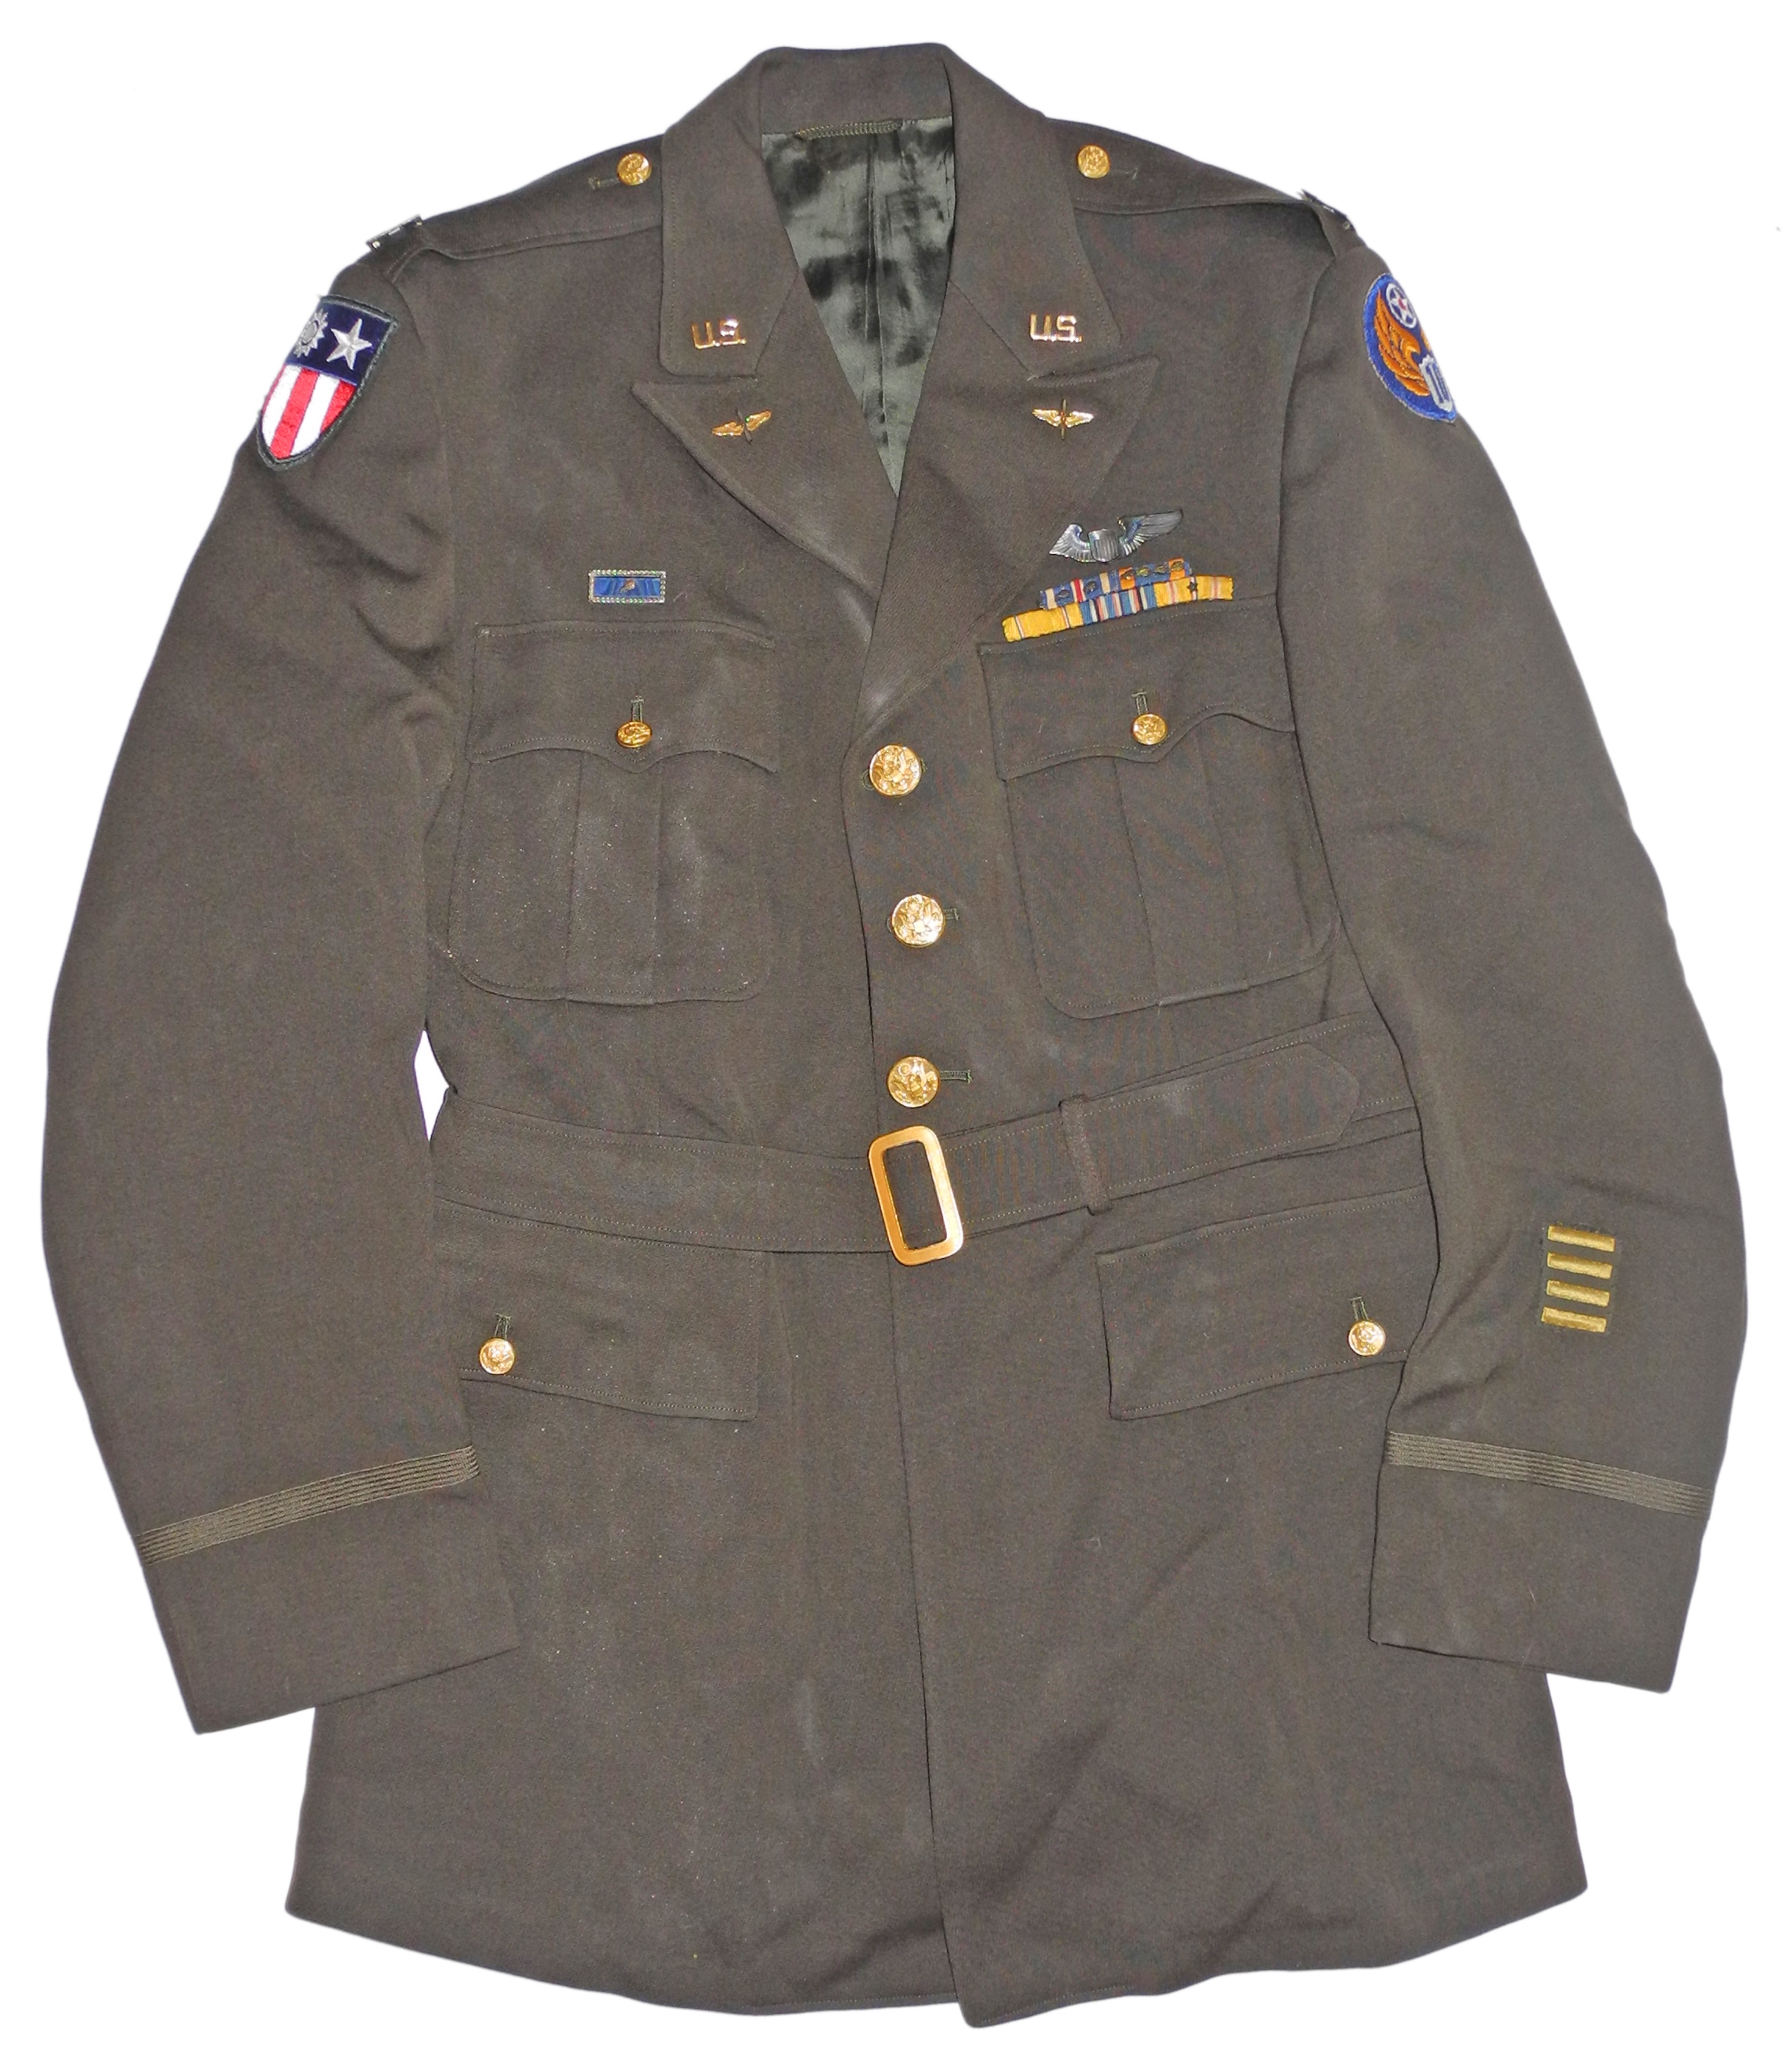 AAF CBI 10th AF officer's 4-pocket tunic